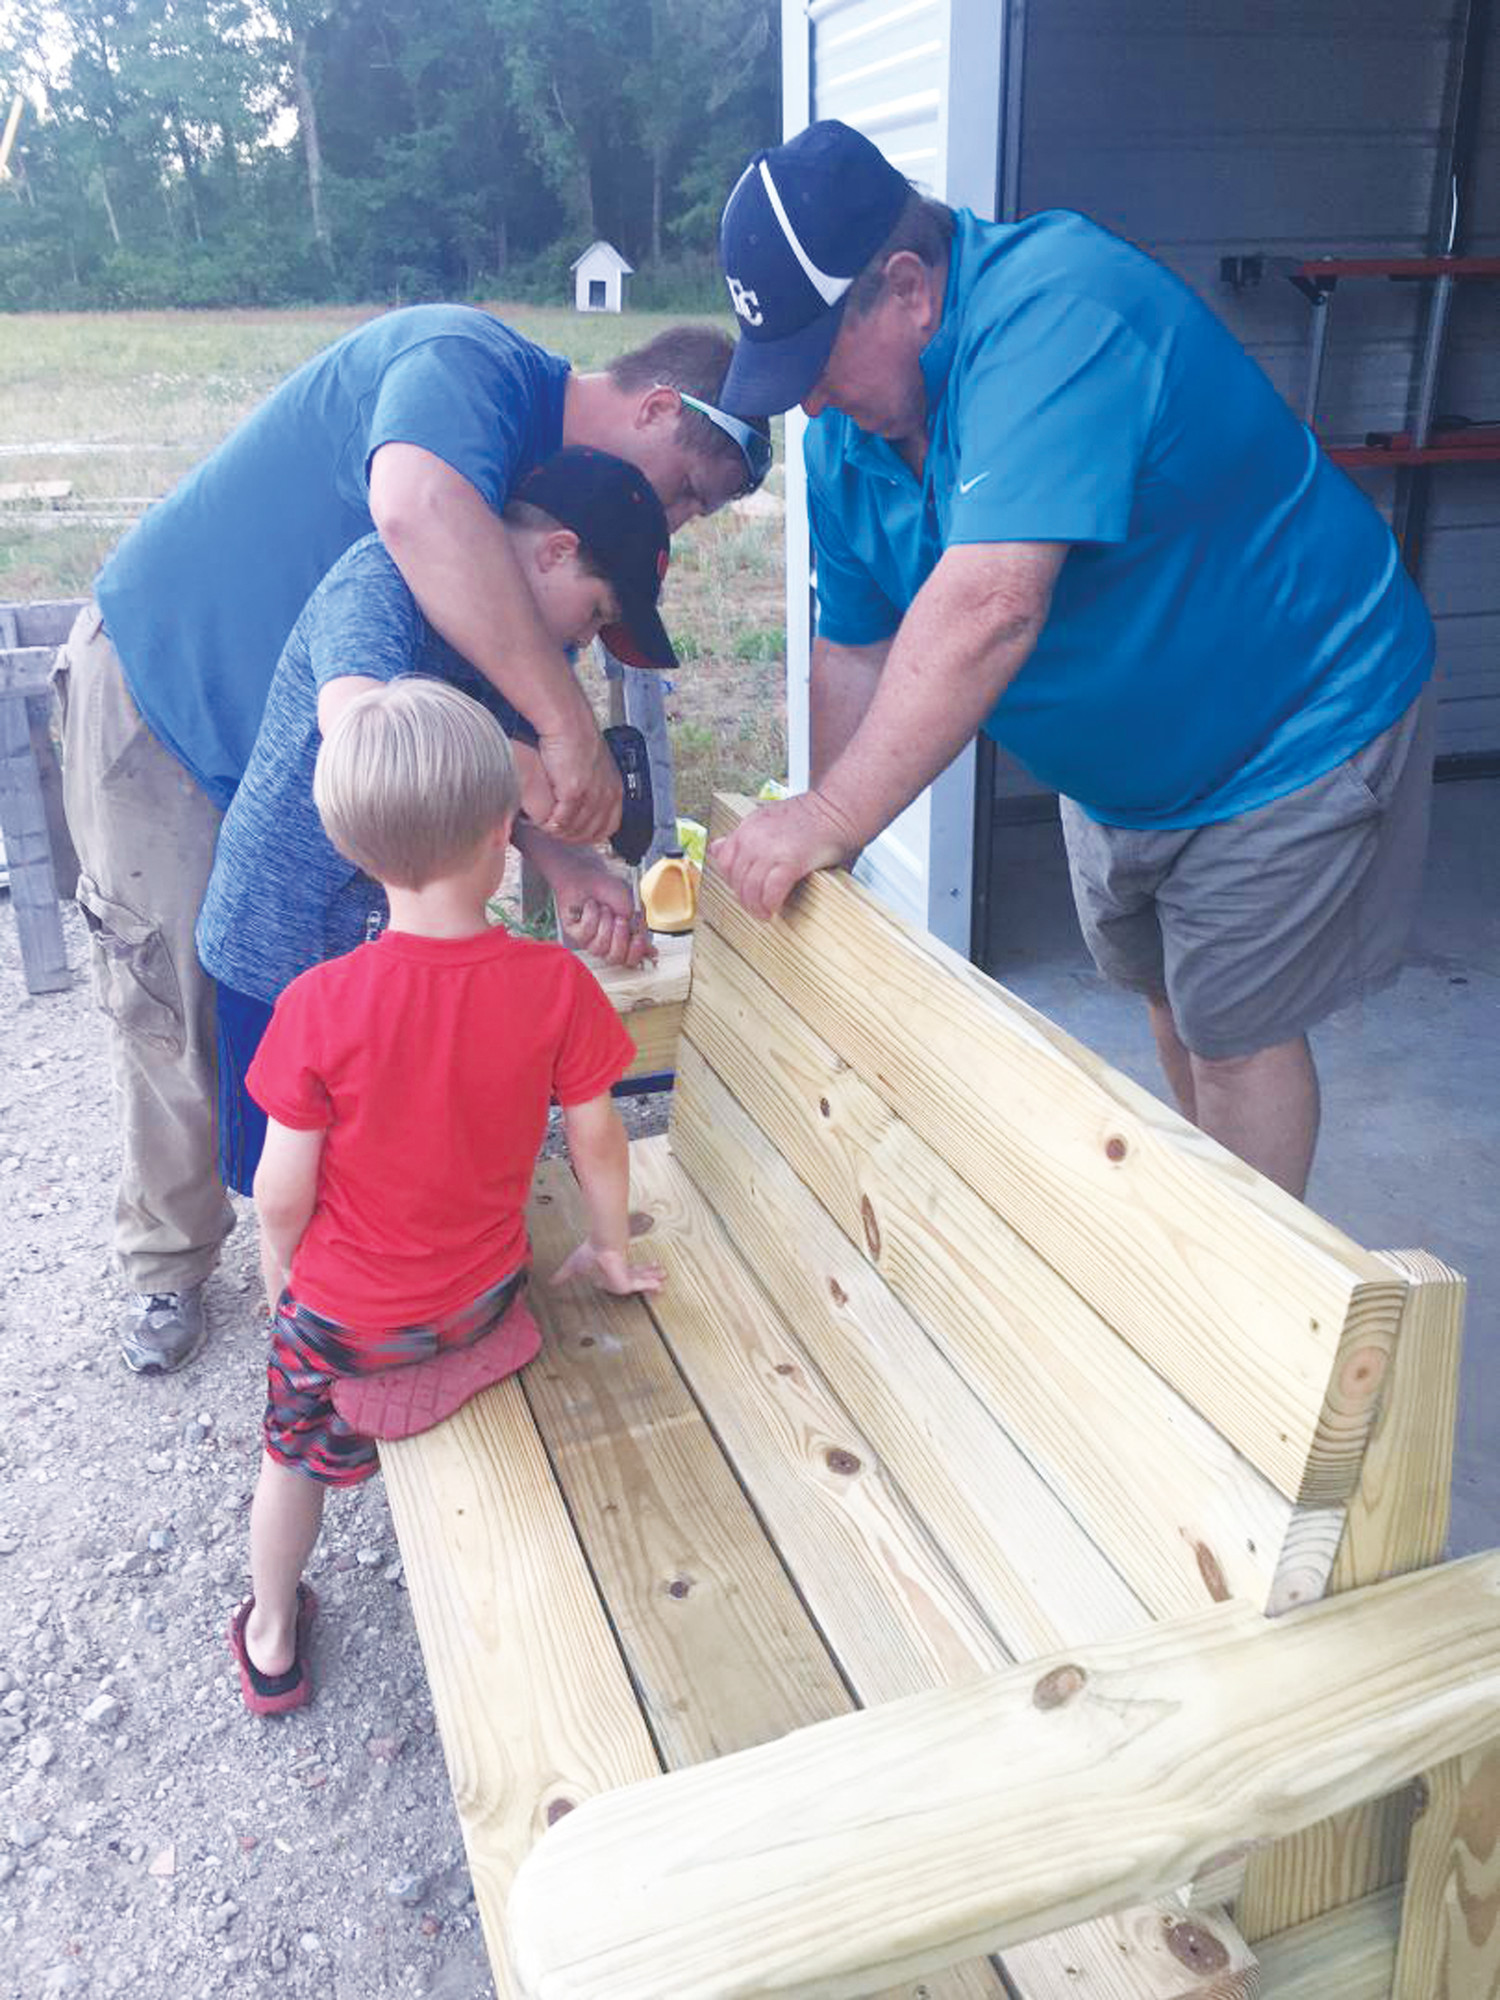 PHOTOS PROVIDEDColin Myers helps his father, Nick Myers, build a Buddy Bench as his brother, Evan, and his grandfather, Benton Blakely, offer their help.